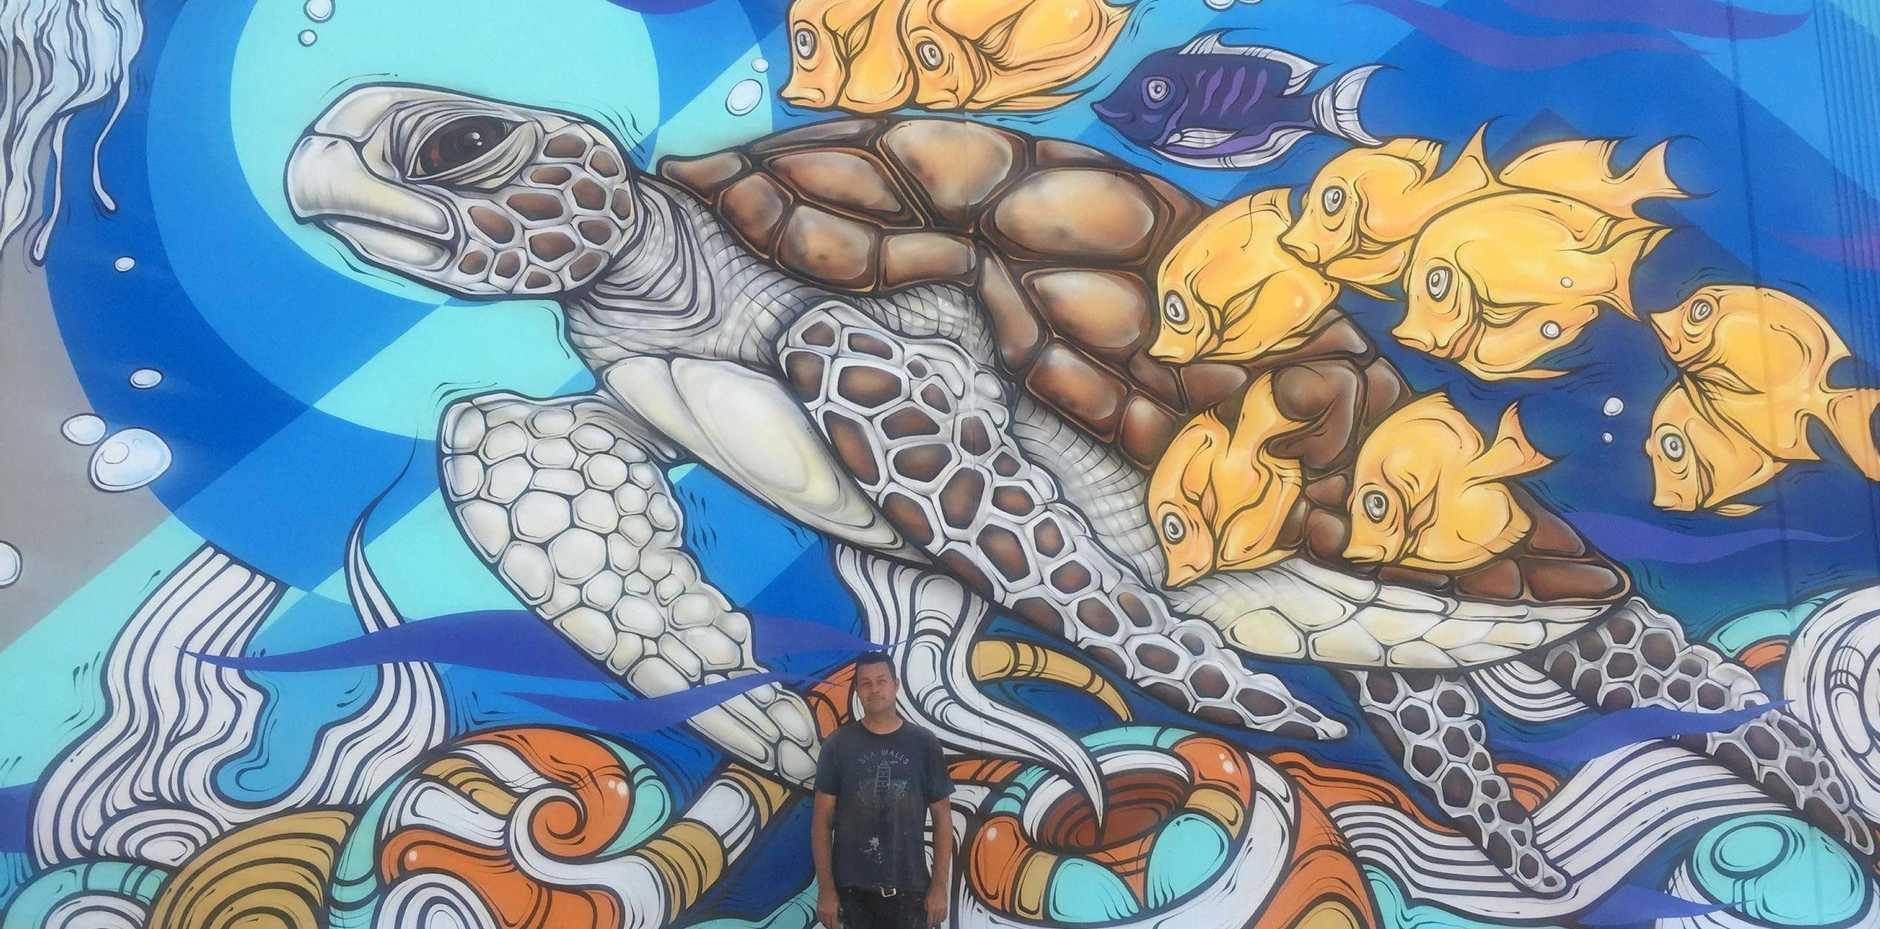 Bundaberg's newest mural is 'turtly' awesome | News Mail